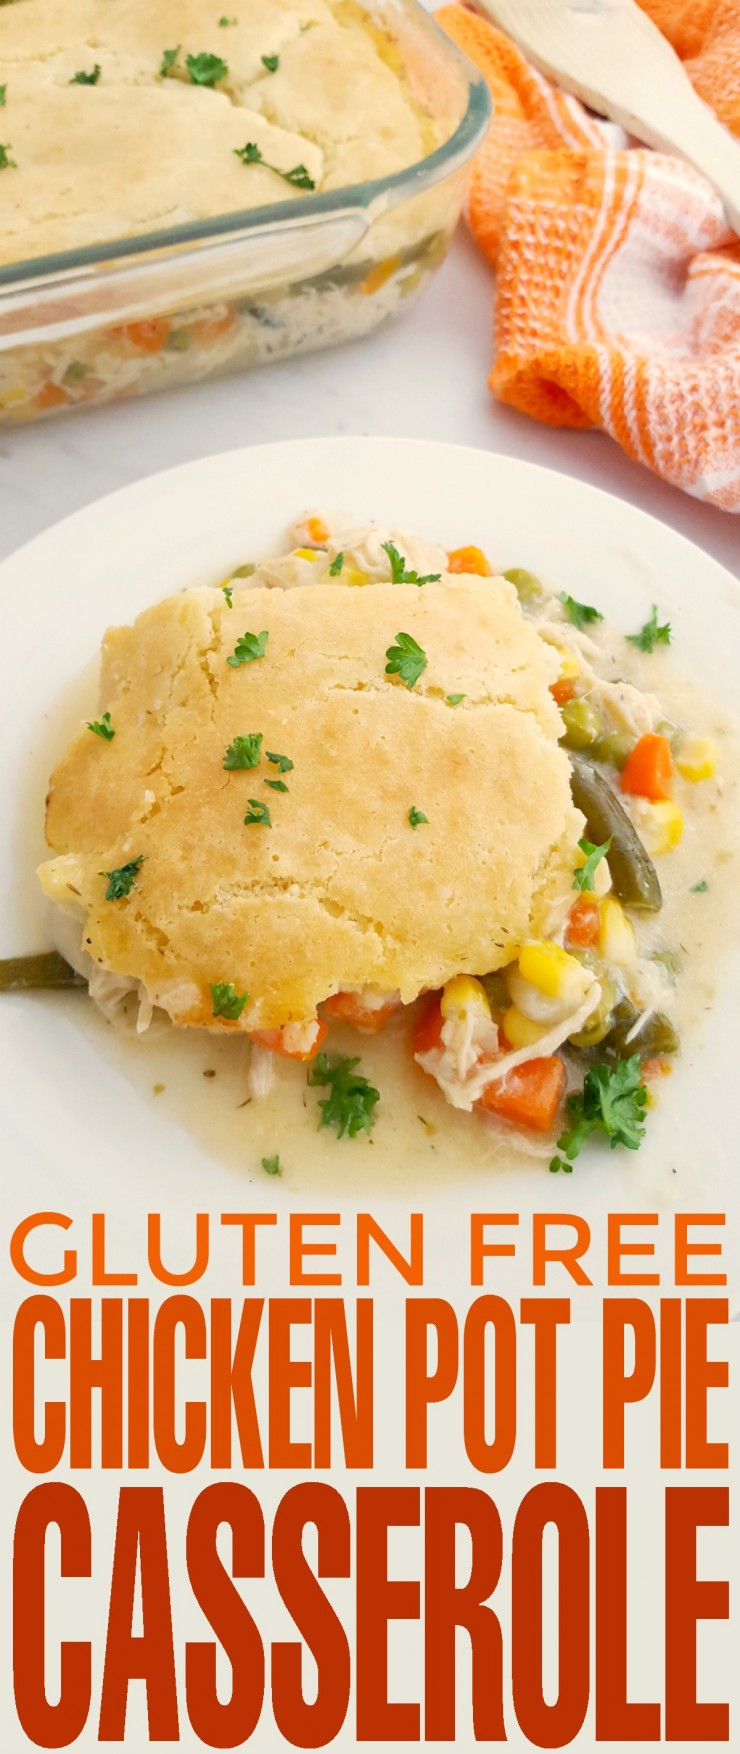 This Gluten Free Chicken Pot Pie Casserole recipe is a delicious gluten free version of a family favourite. Perfect for serving anyone who cannot eat gluten, it can be enjoyed by all.